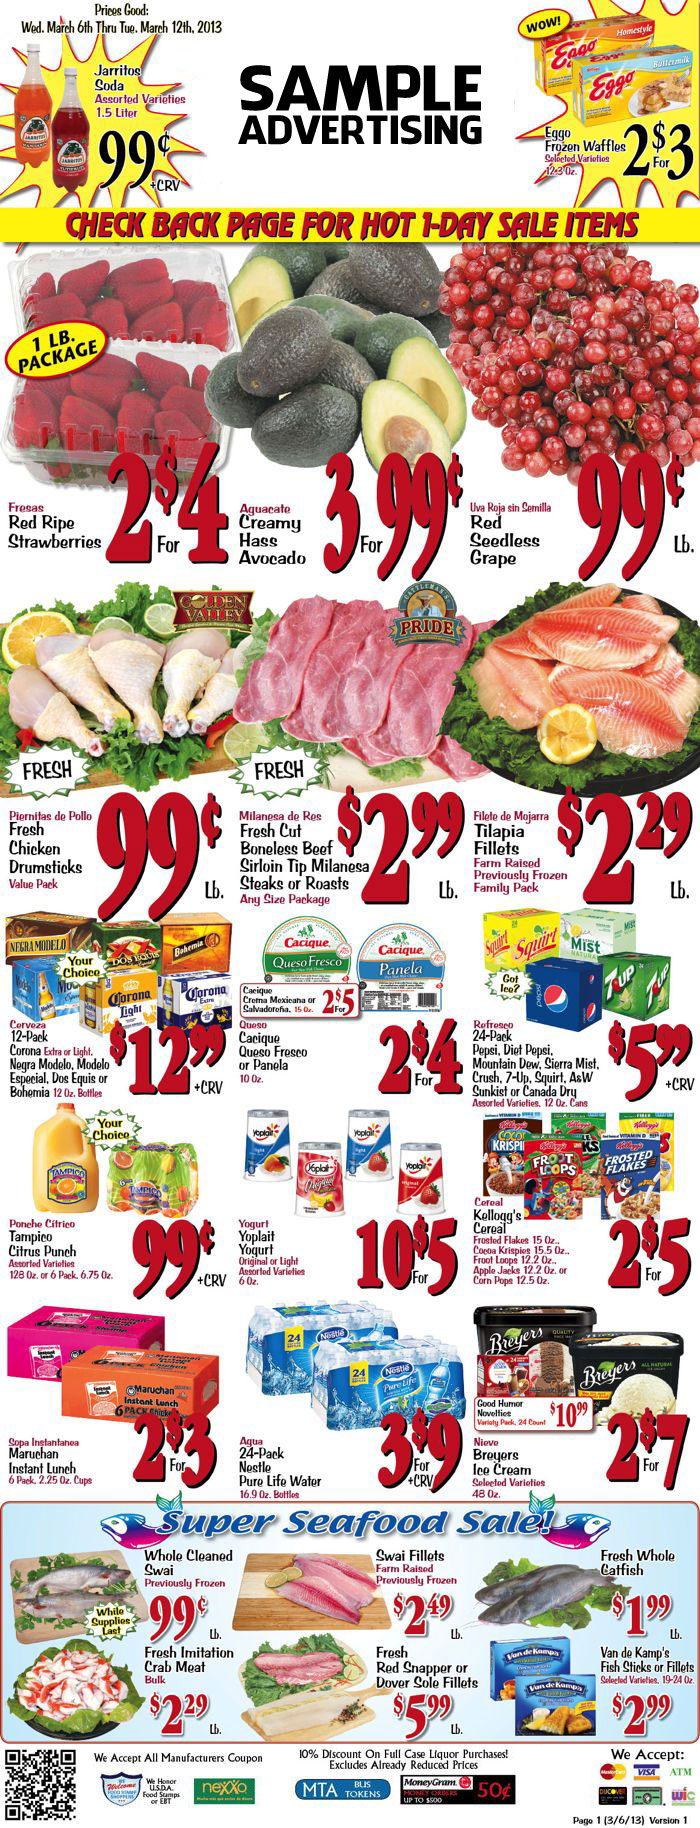 carnival weekly ad